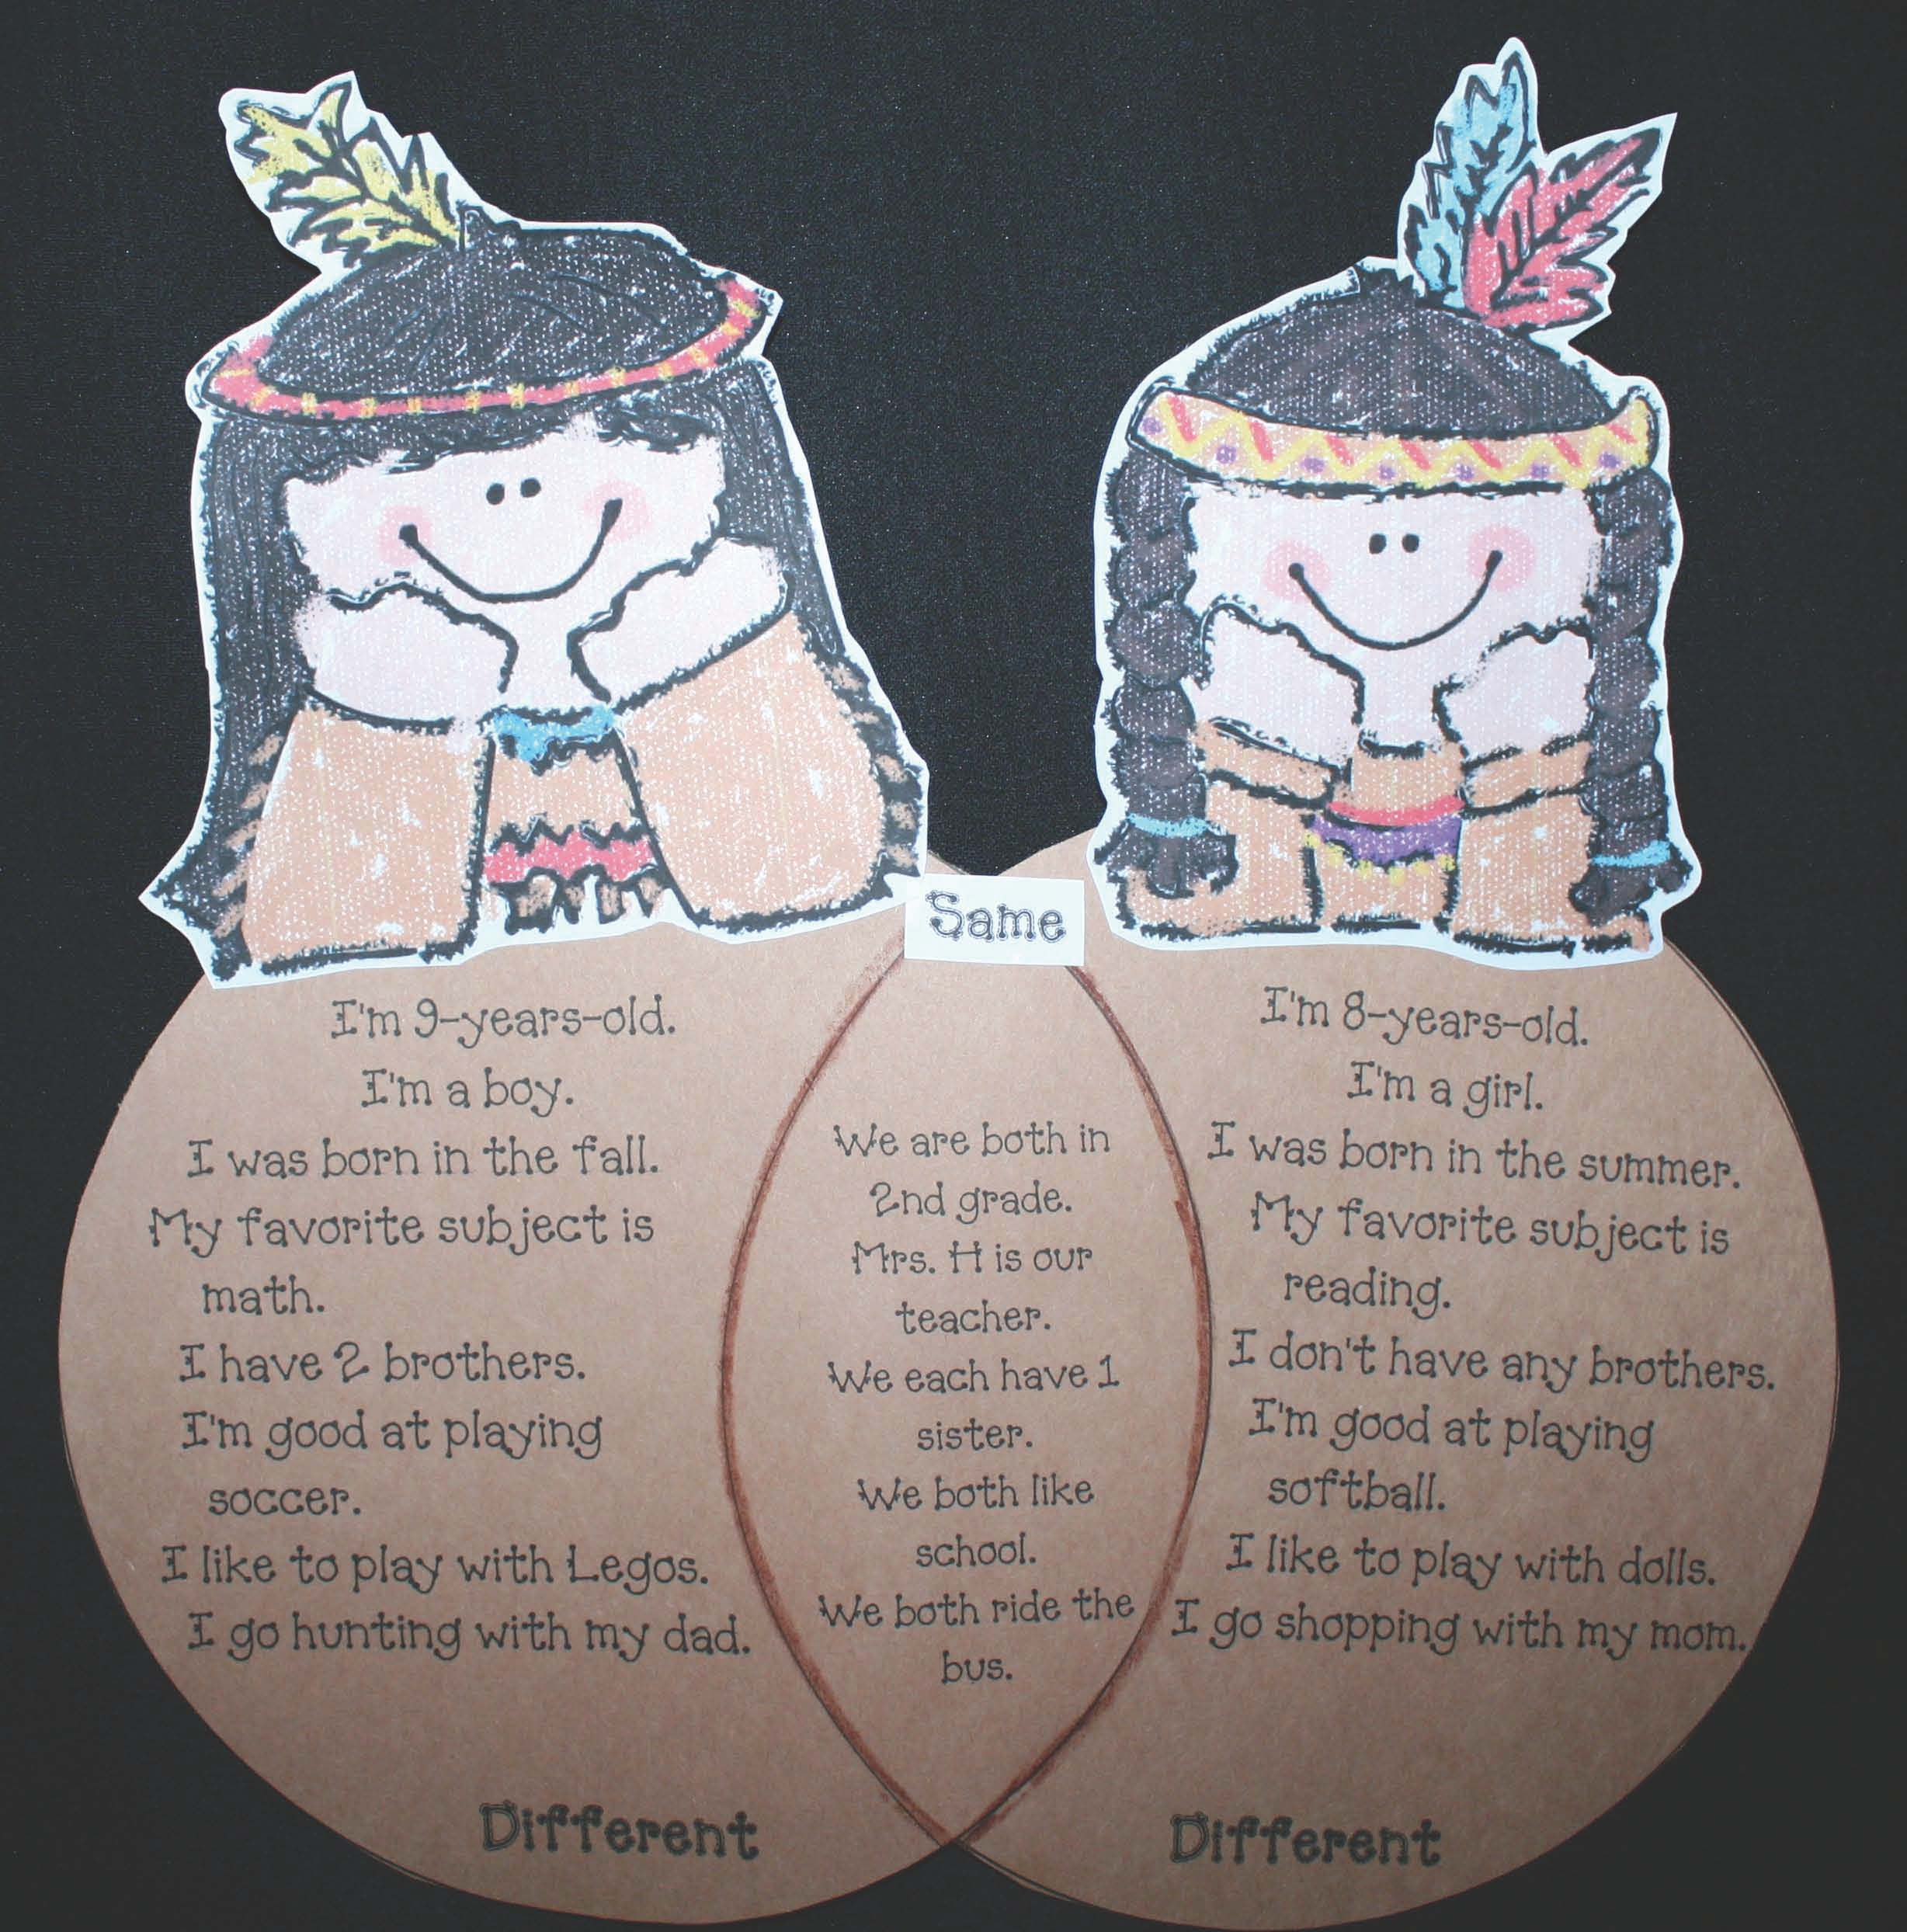 November venn friends, venn friends, pilgrim venn friends, turkey venn friends, native american venn friends, venn diagram activiites, comparison and contrast writing, venn diagram pattern, thanksgiving activities, thanksgiving crafts, activities for getting to know your students,